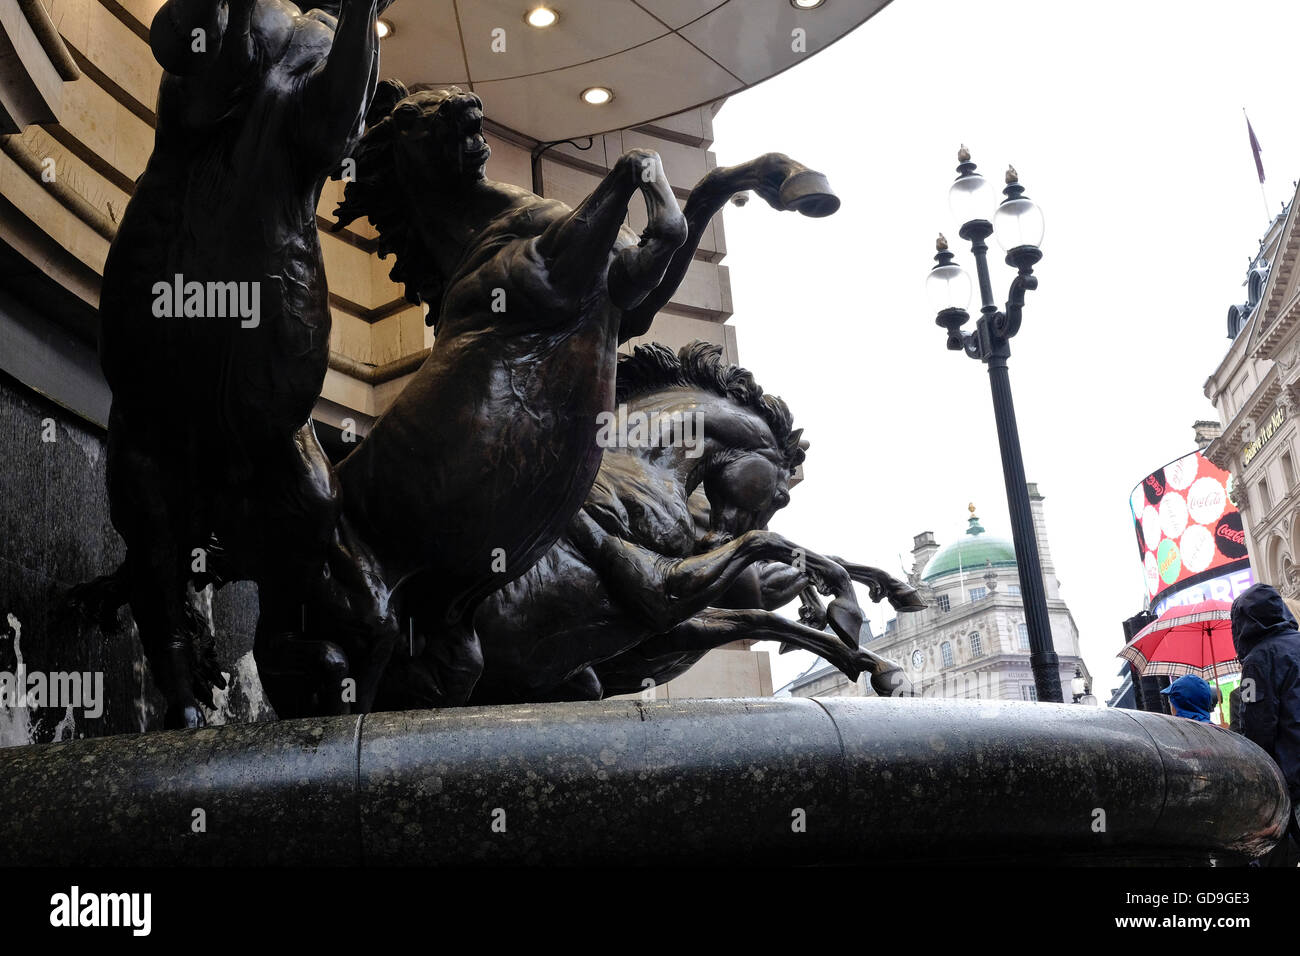 London Piccadilly Circus .Statues of The Horses of Helios,London landmark, also known as The Four Bronze Horses - Stock Image